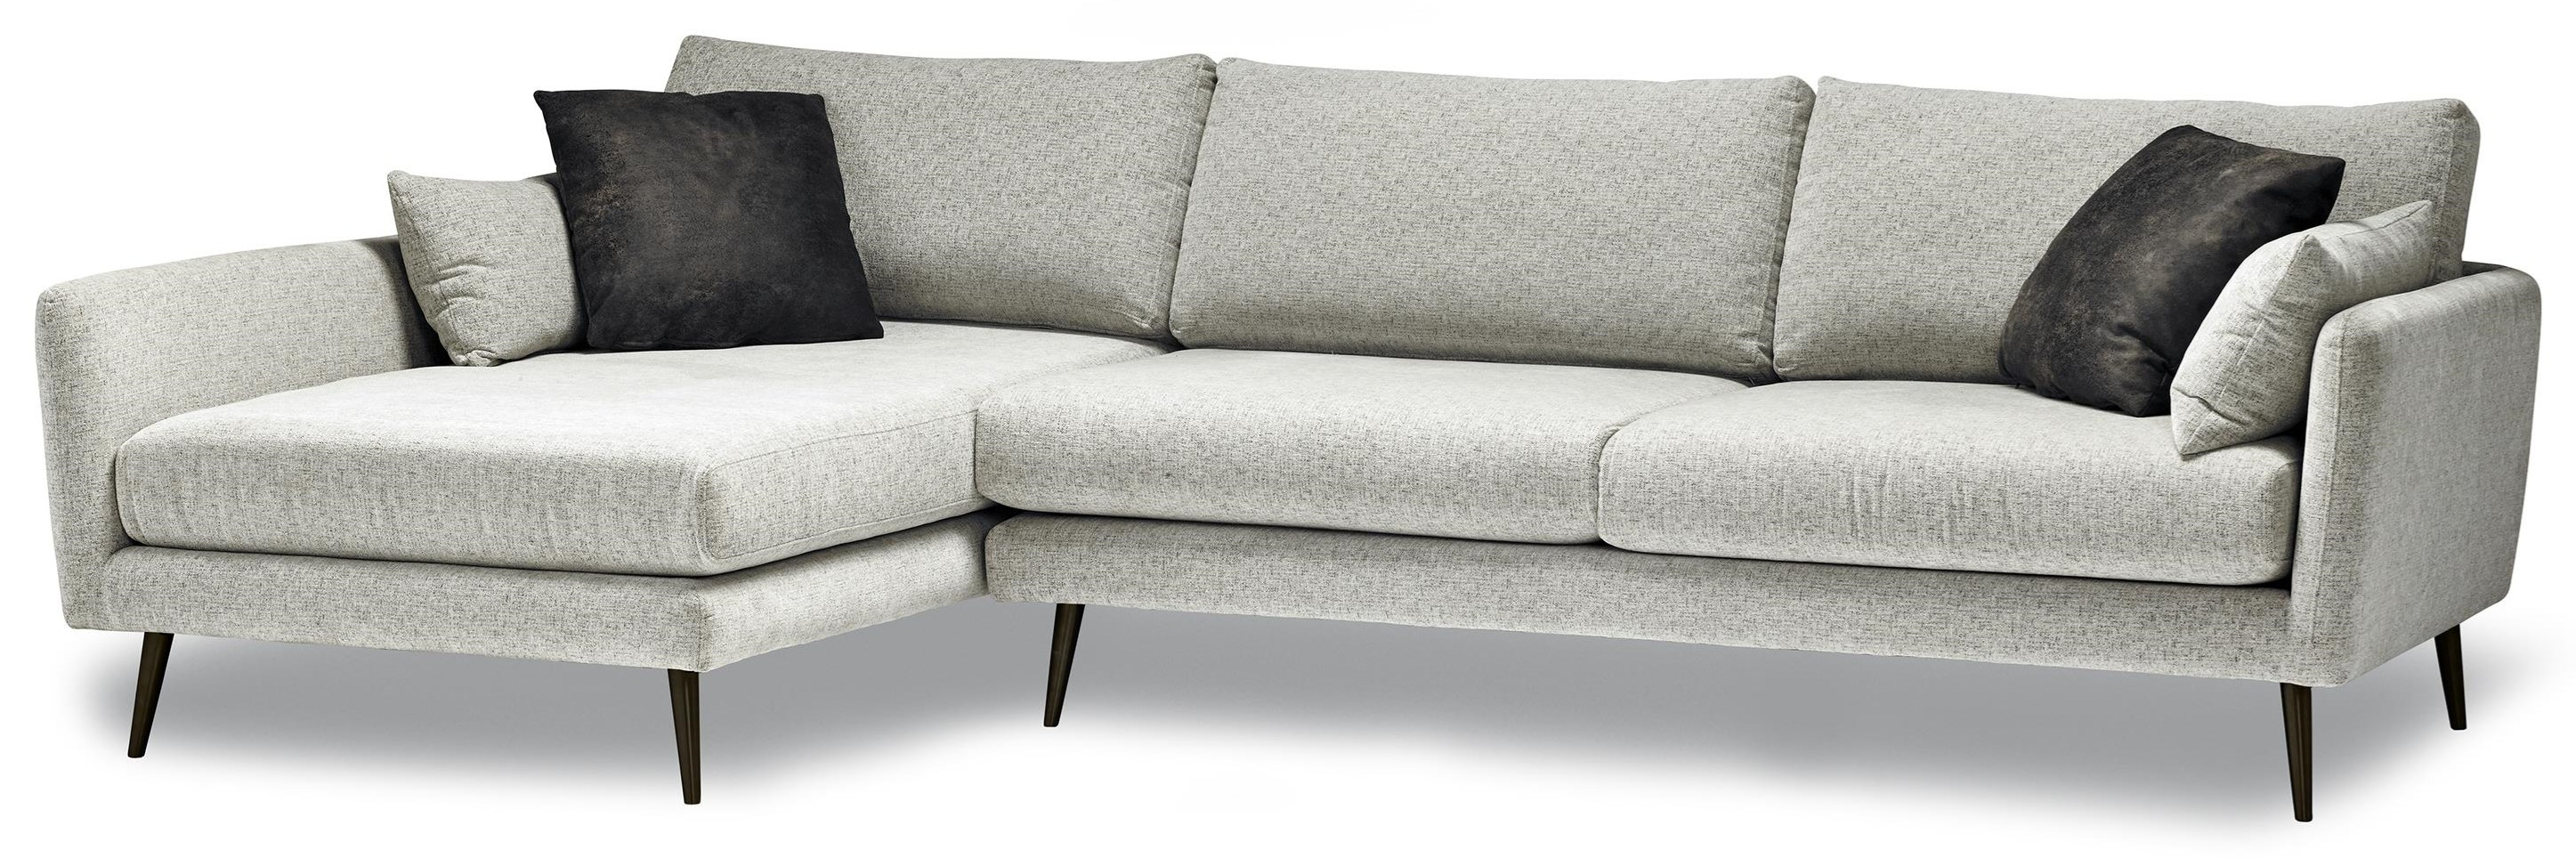 3297 2 Pc Sectional in  Honor Pepper by Lewis Home at Stoney Creek Furniture